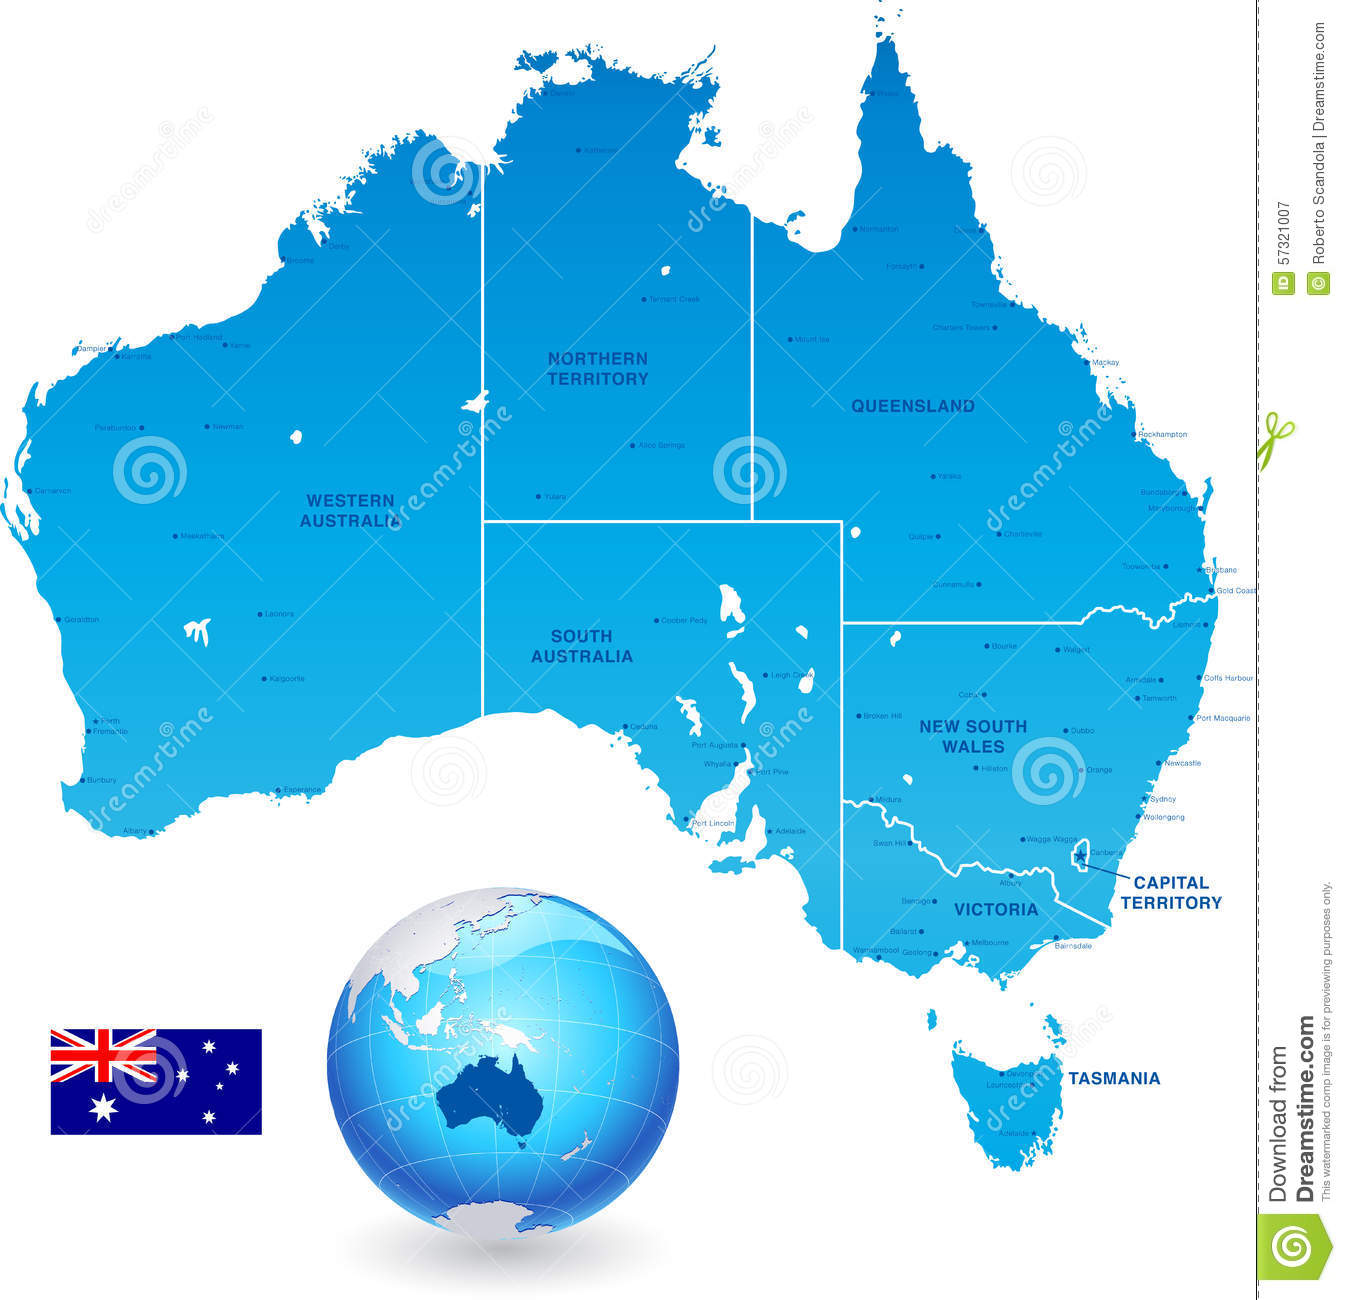 Australia Map States And Cities.Australia Administrative Map Set Stock Vector Illustration Of